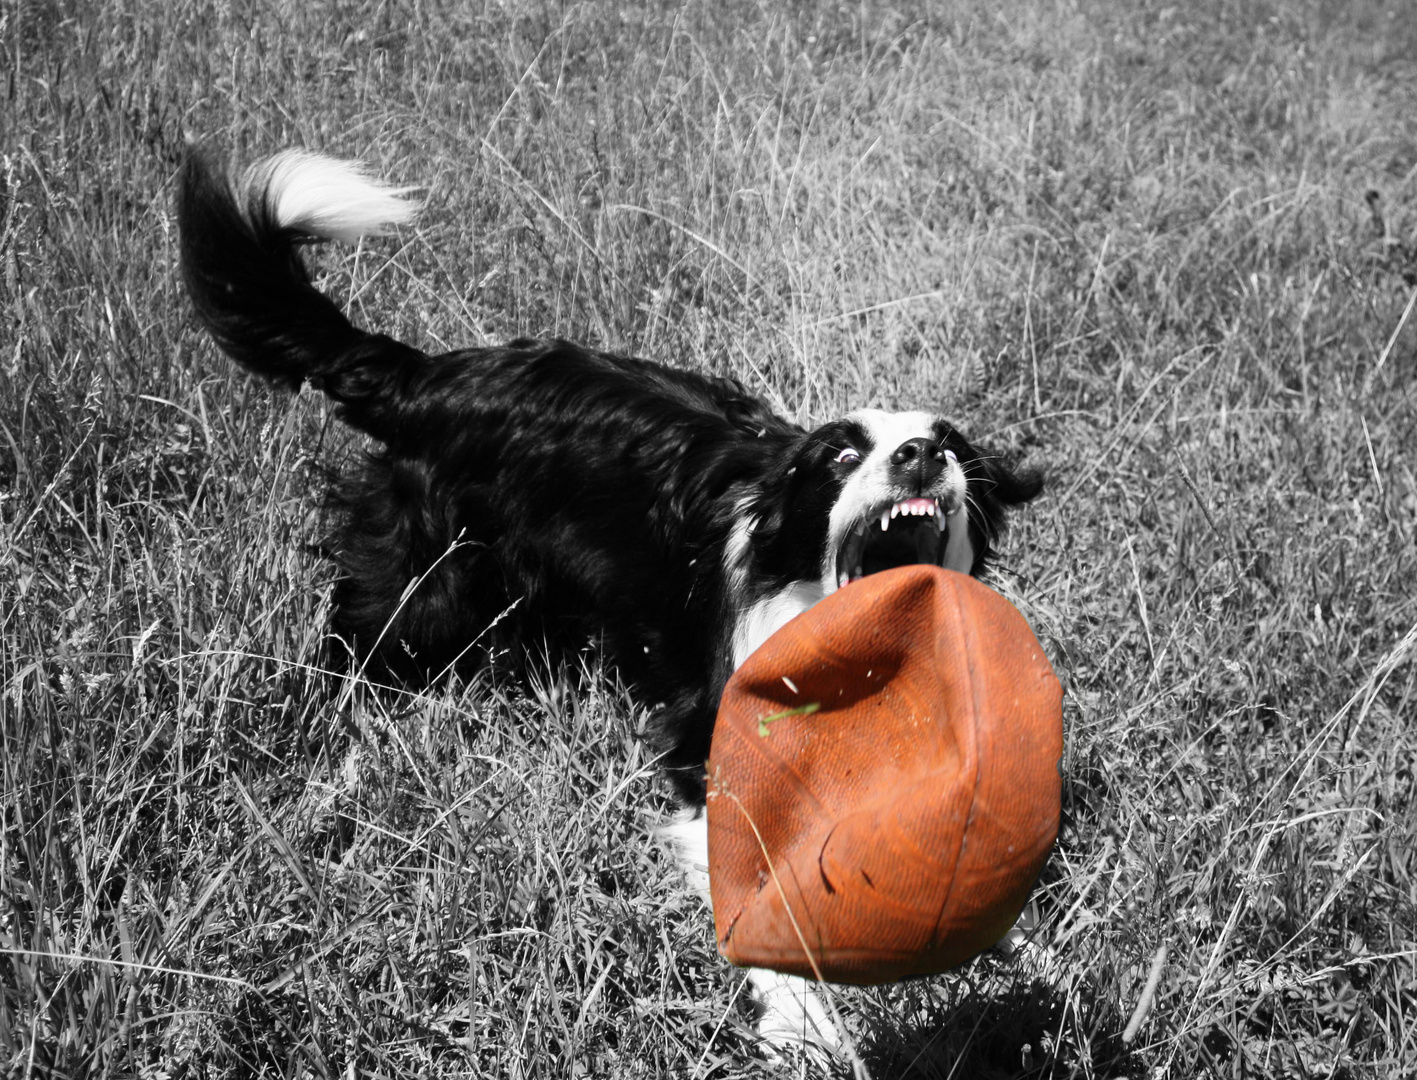 Border Collie in Action